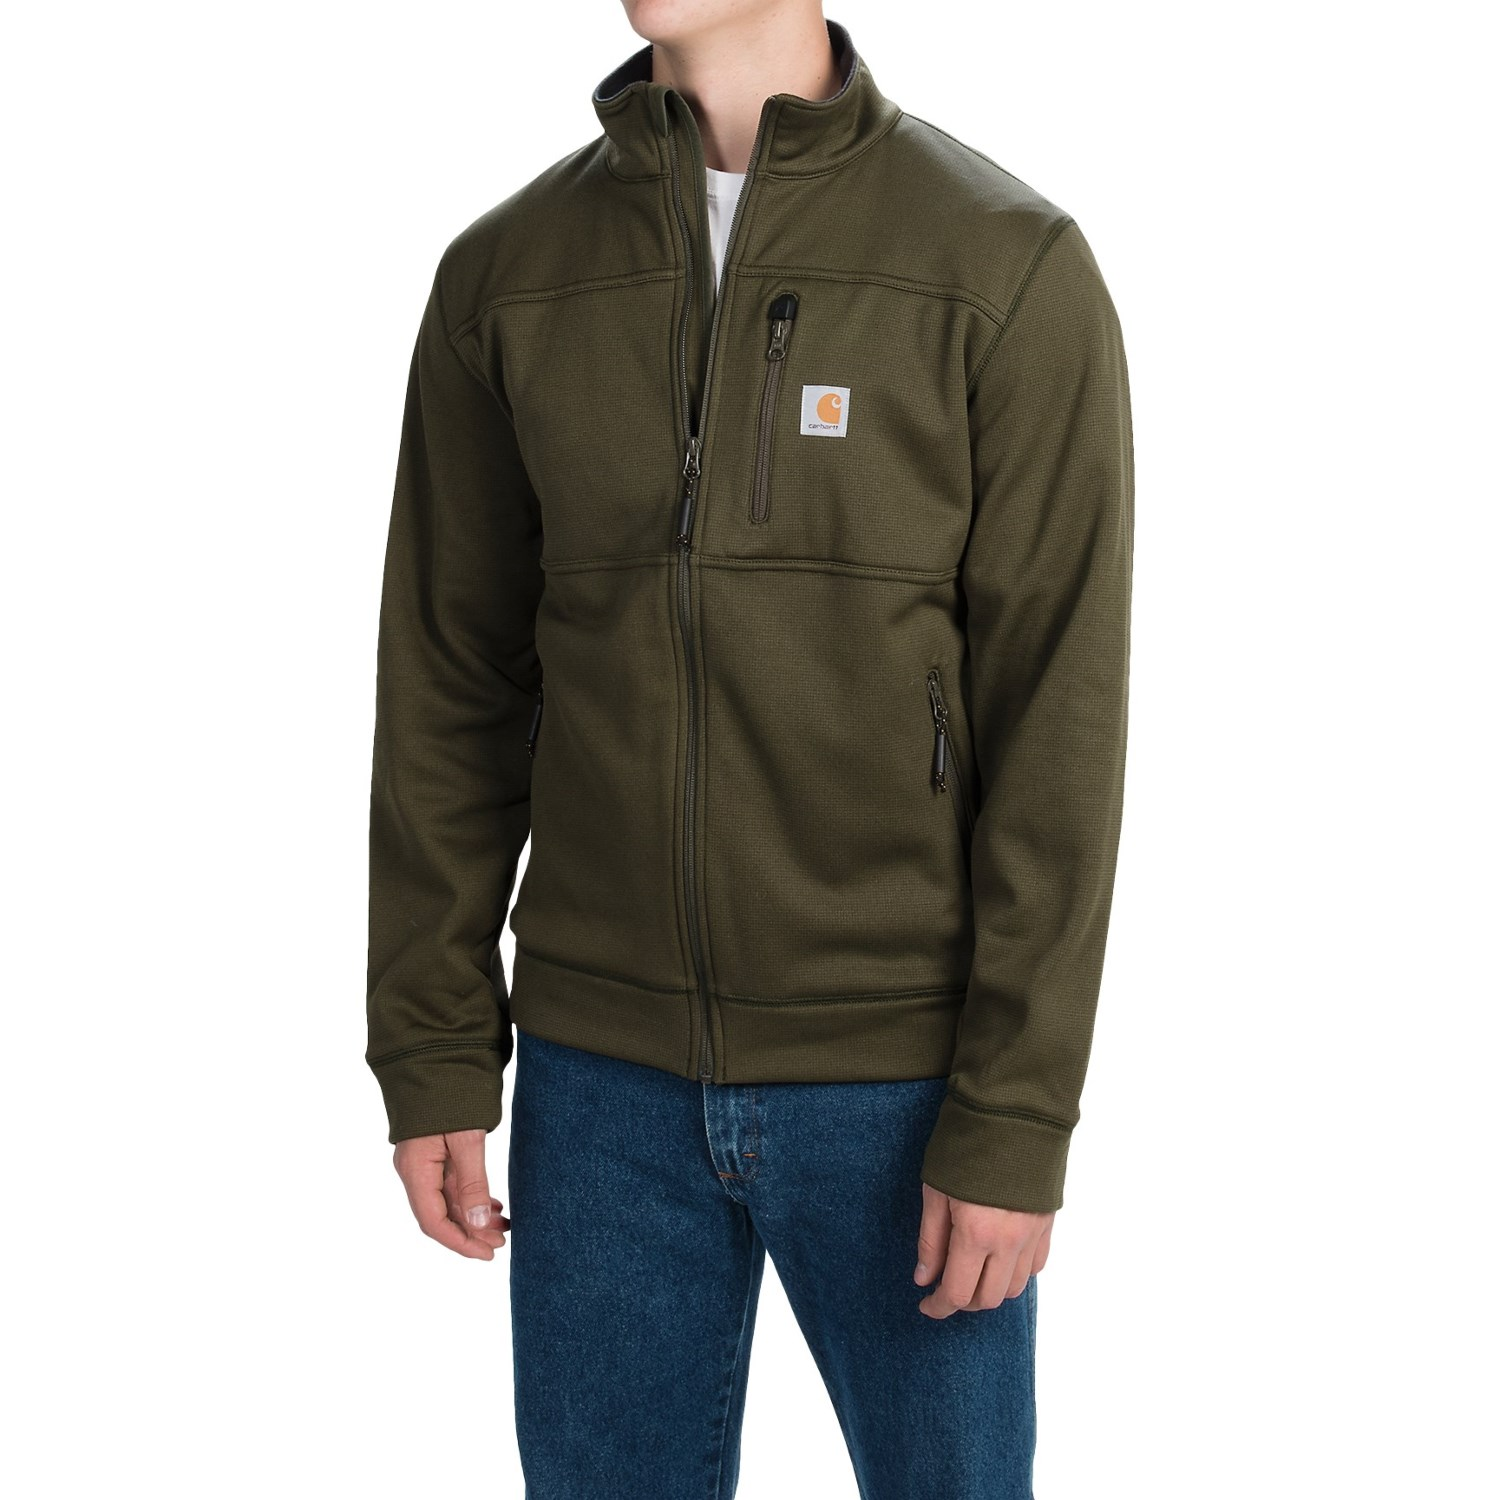 Carhartt Workman Polartec Fleece Jacket For Big And Tall